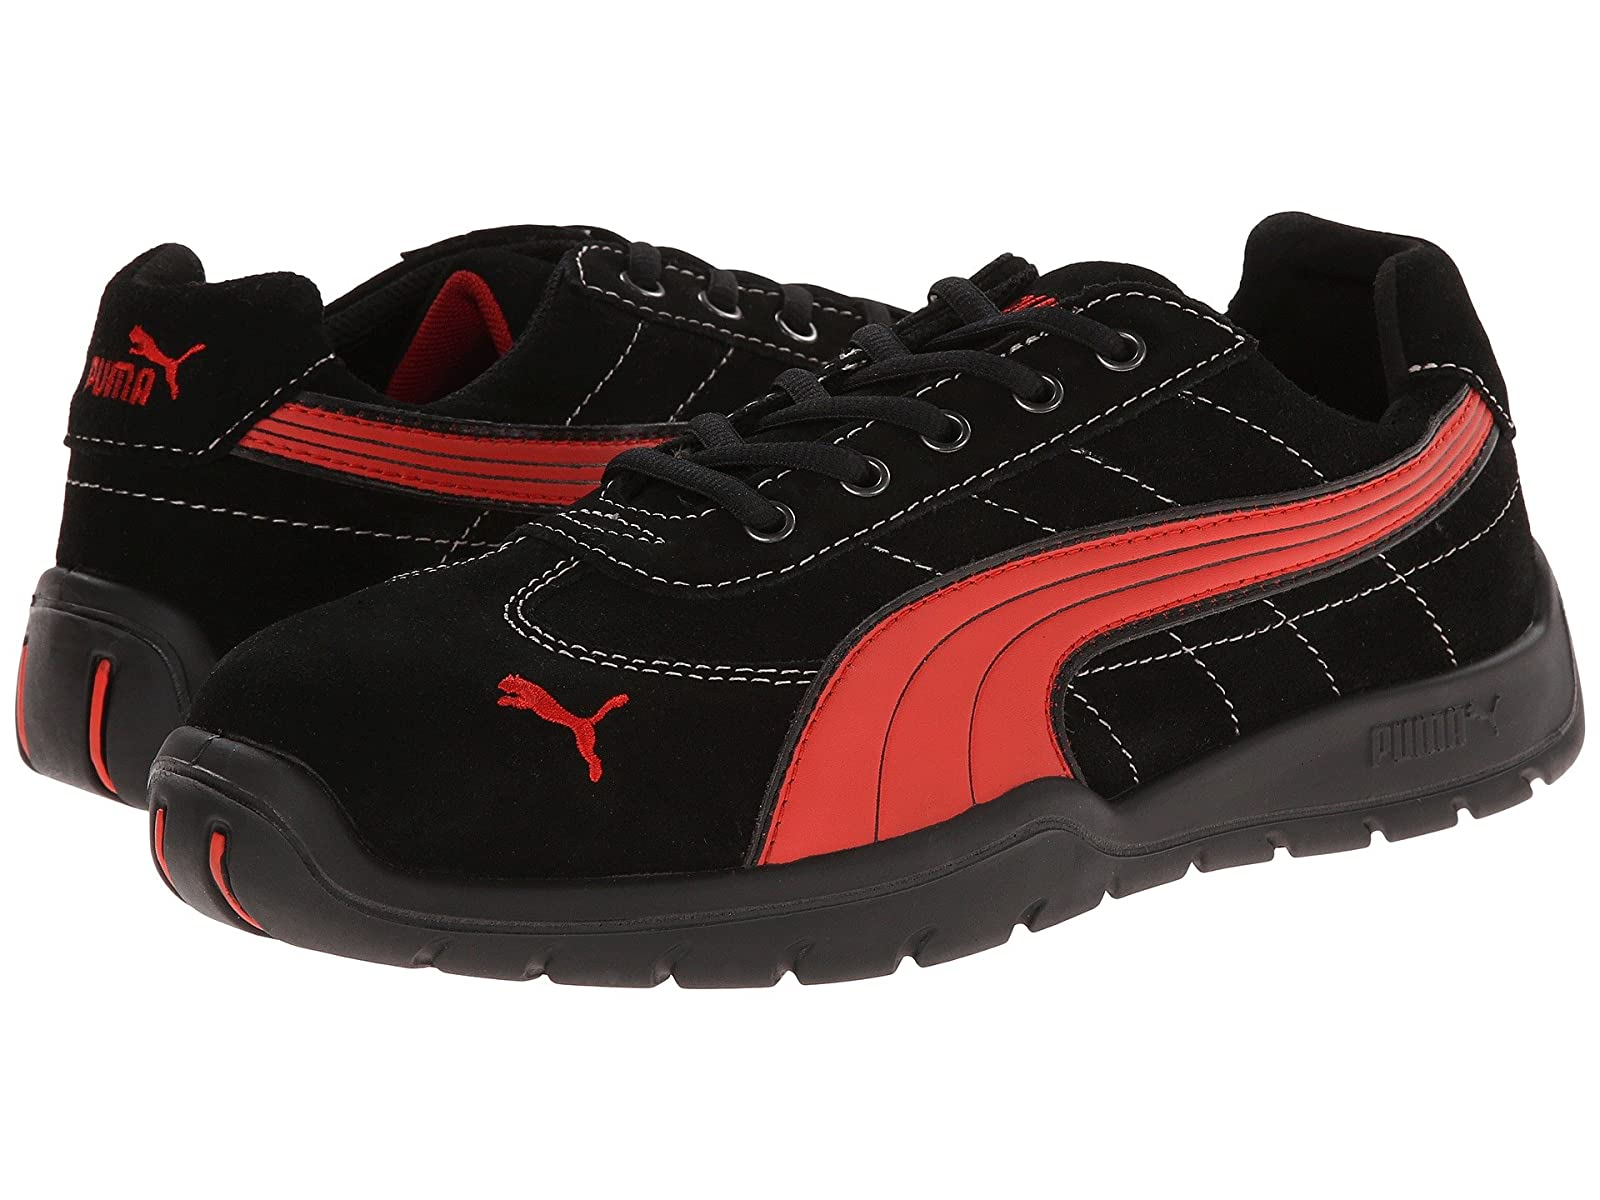 PUMA Safety Silverstone SDAtmospheric grades have affordable shoes